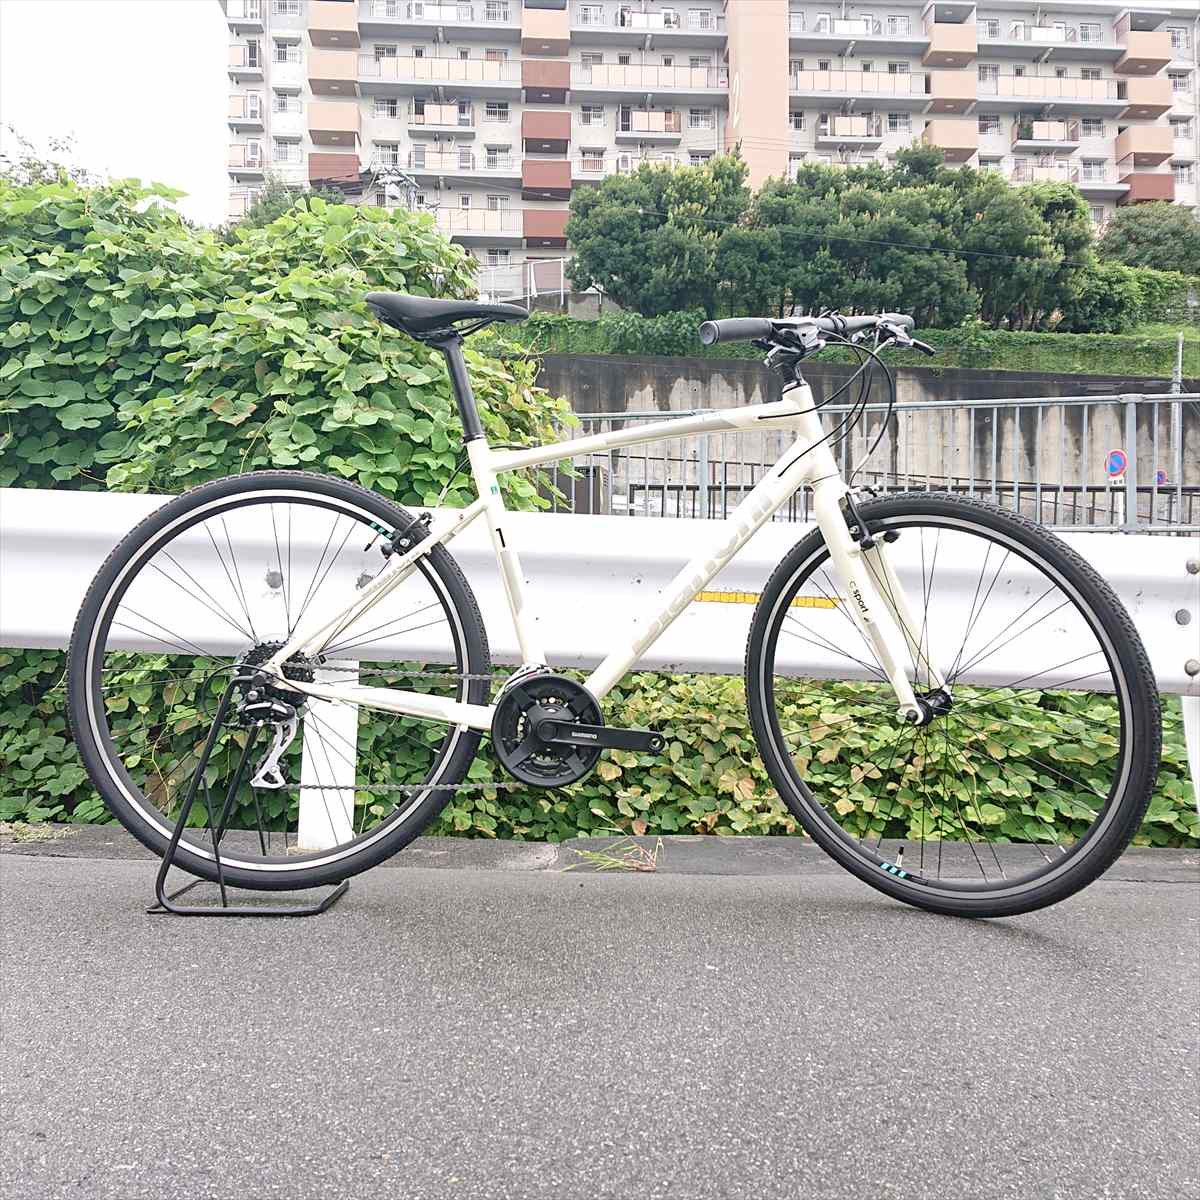 <img class='new_mark_img1' src='//img.shop-pro.jp/img/new/icons14.gif' style='border:none;display:inline;margin:0px;padding:0px;width:auto;' />Bianchi C-Sport